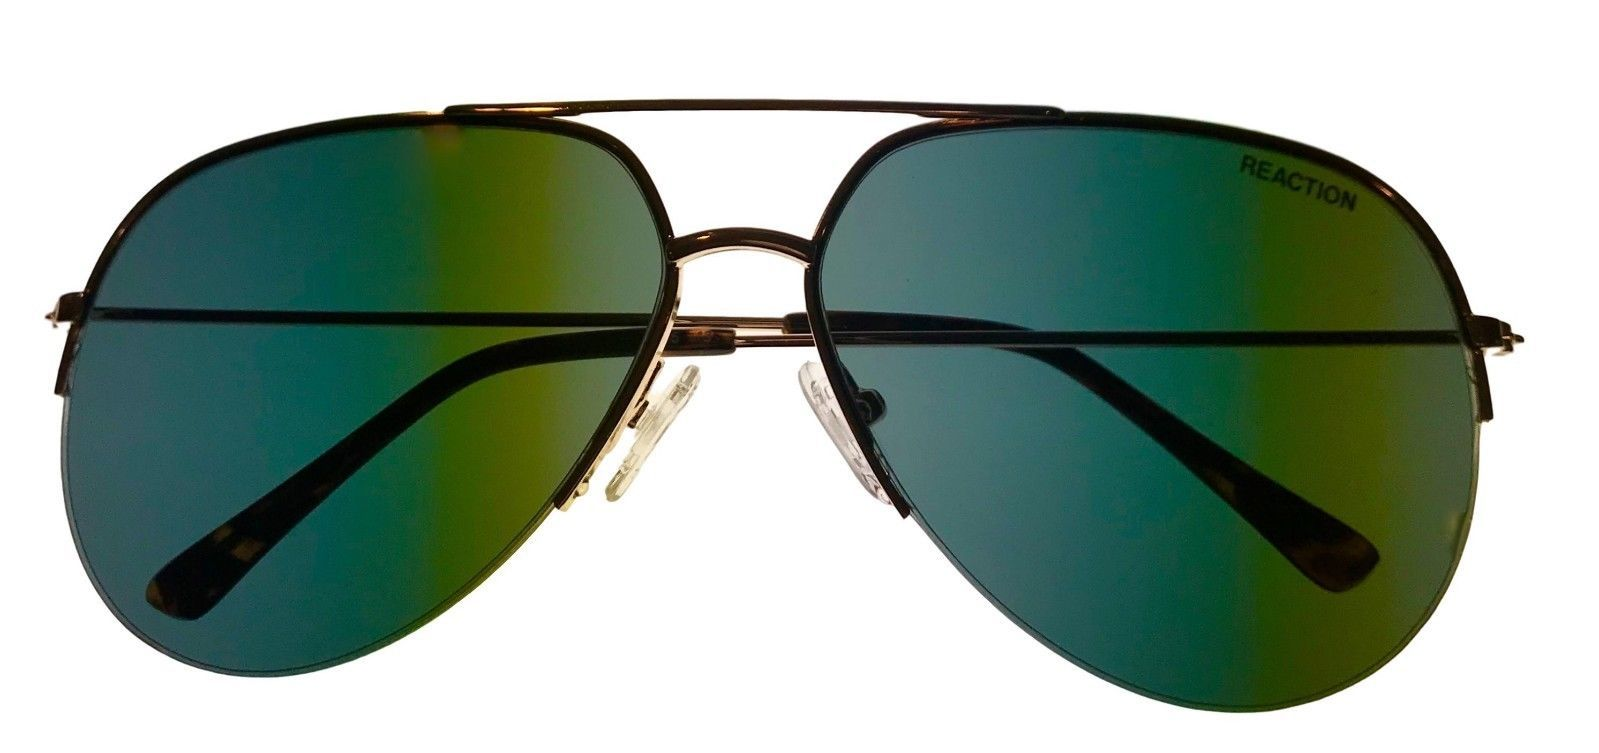 Kenneth Cole Reaction Mens Sunglass Gold Rimless Aviator, KC1307 32N image 4